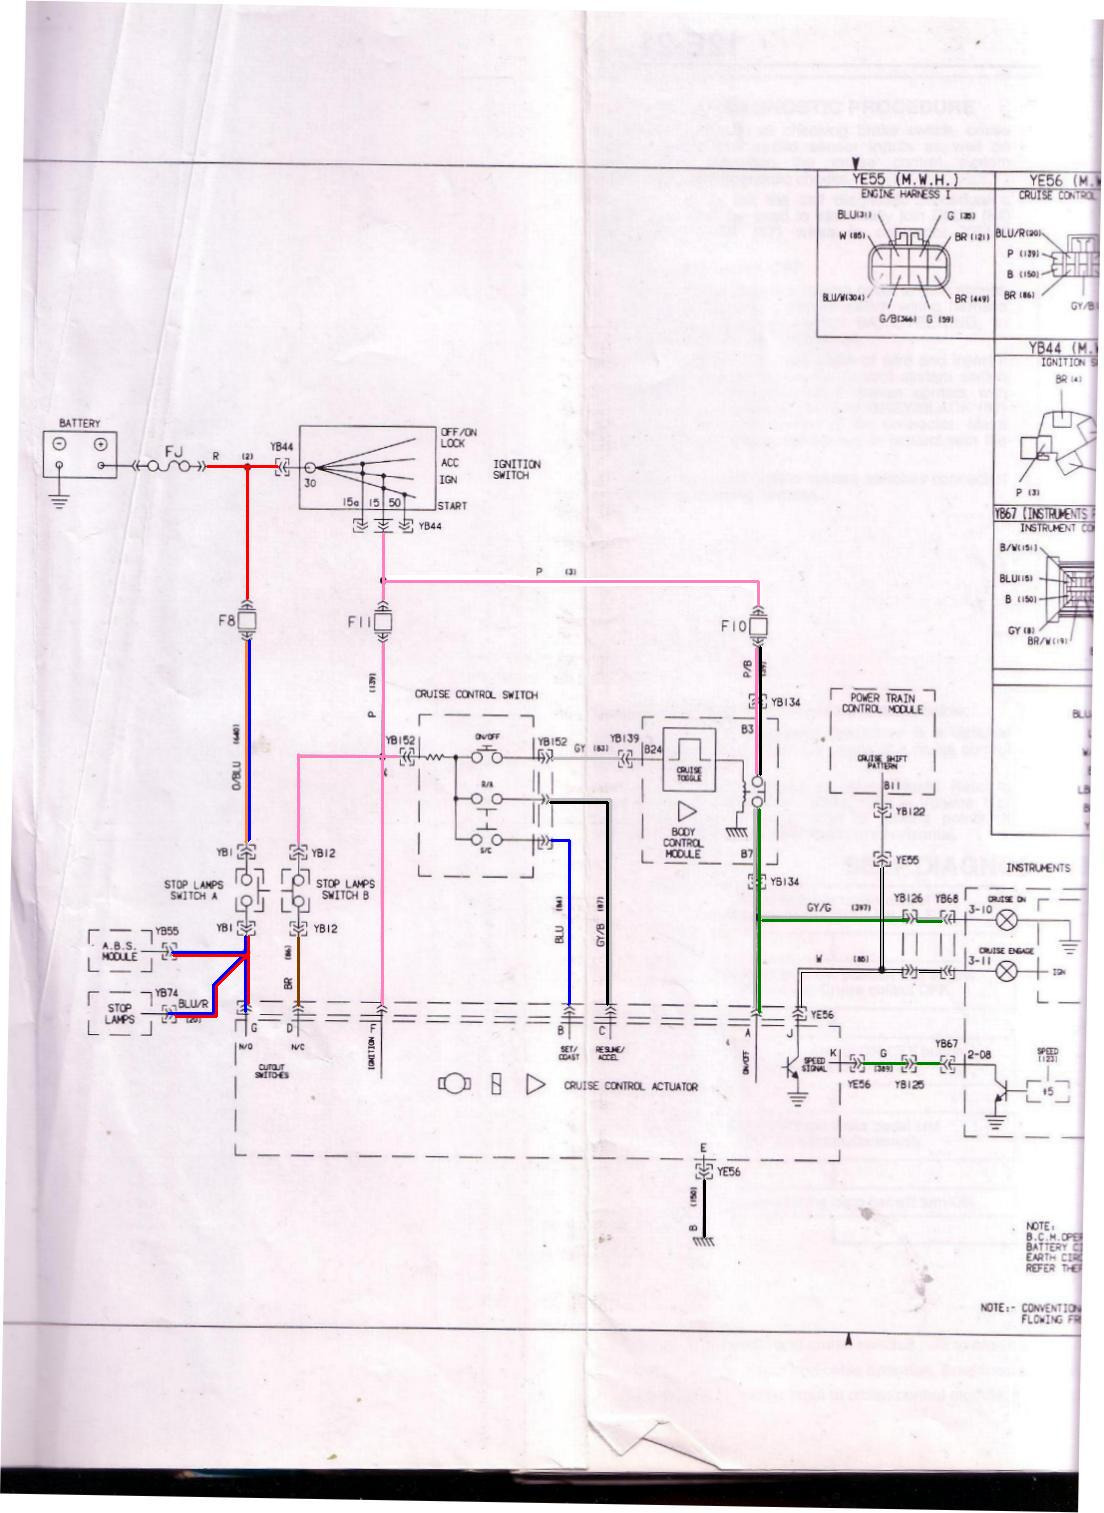 lr 63663 wiring diagram   23 wiring diagram images